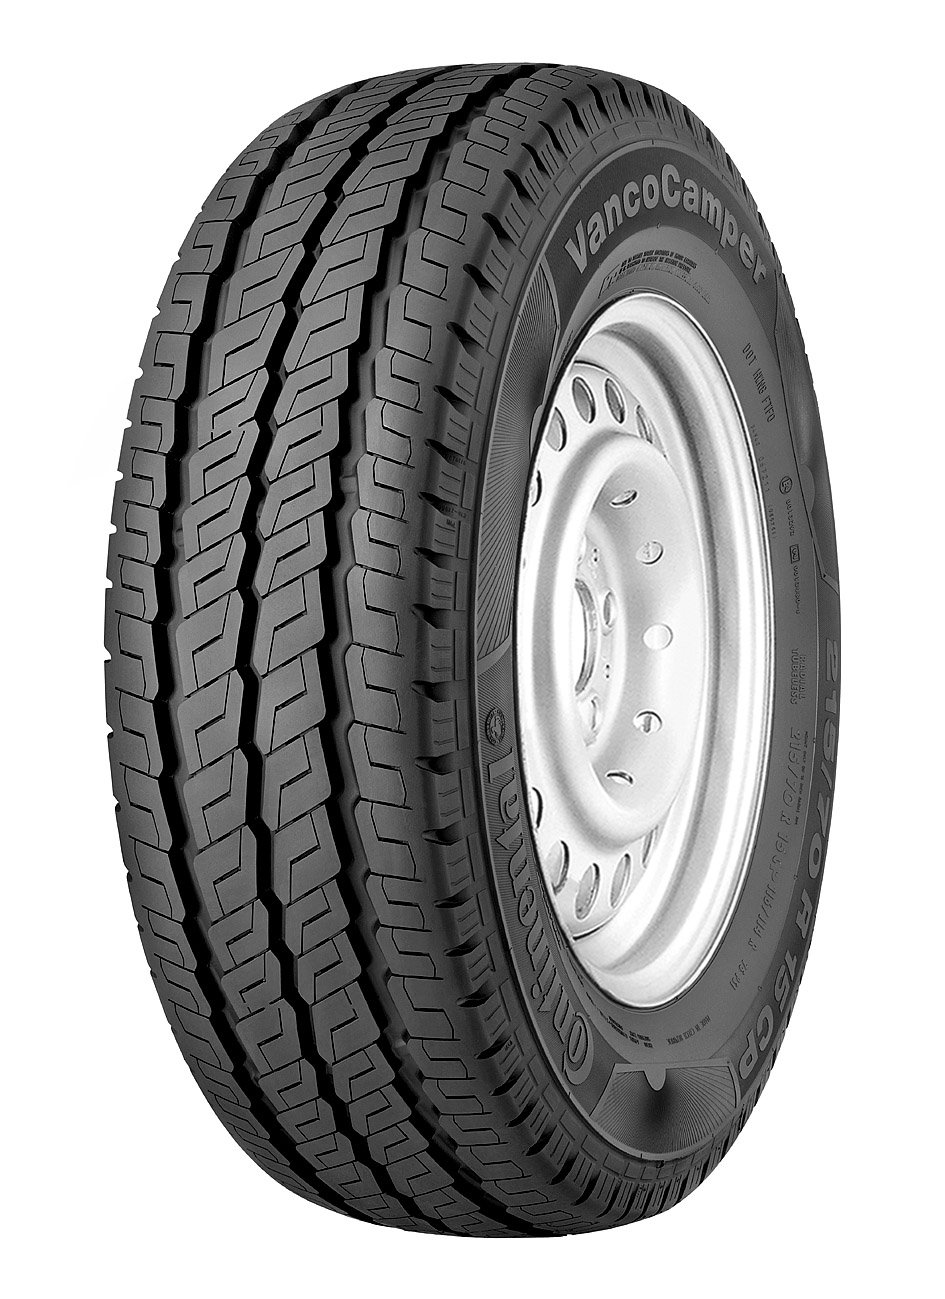 CONTINENTAL VancoCamper   - 225/65/16 112R - C/B/72dB - Summer tire (Light Truck) Continental Corporation